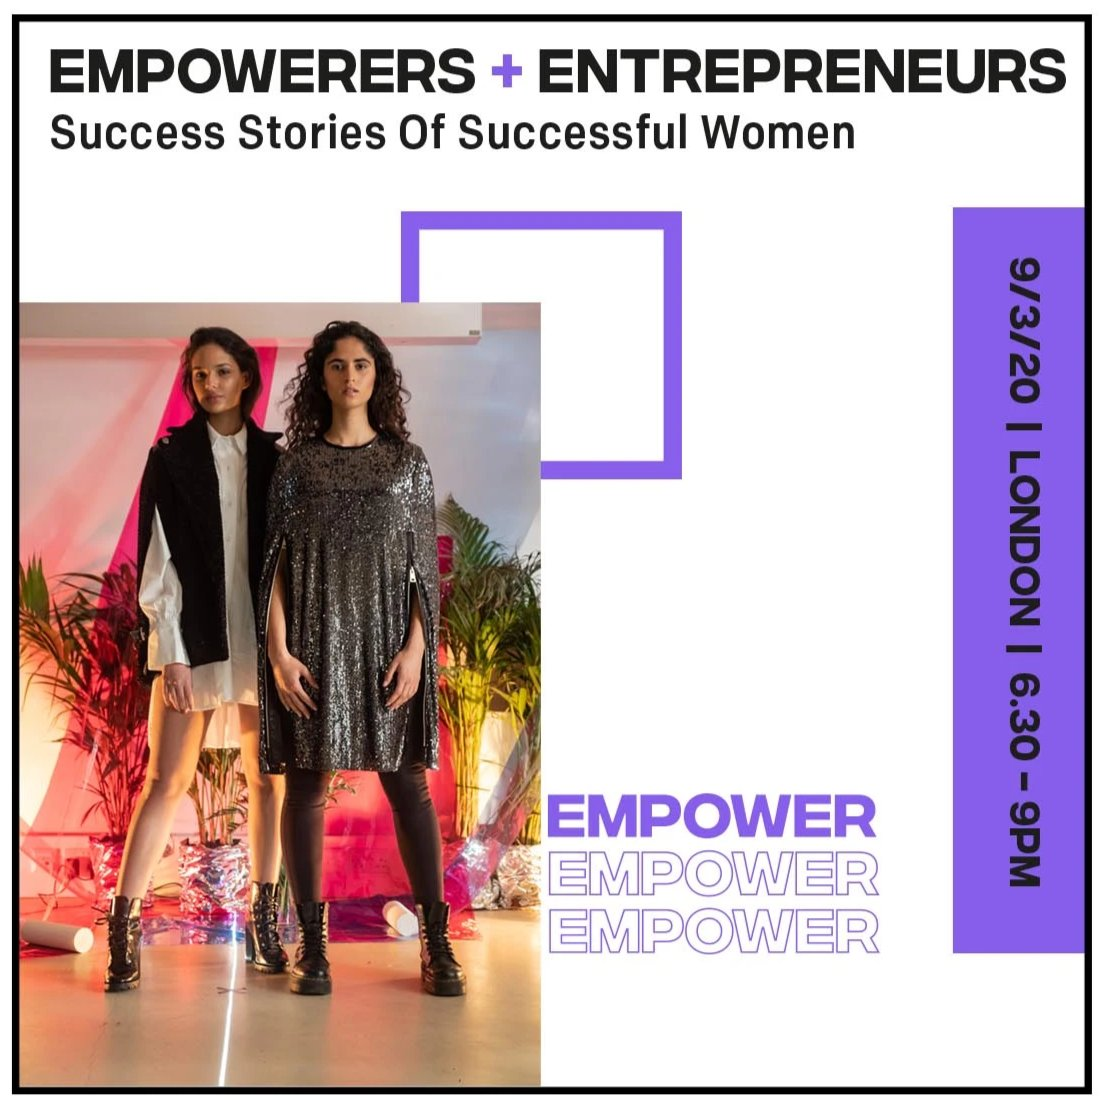 LONDON - LDC's #EachforEqual Empowerers + Entrepreneurs Networking Evening, 09/03 @ 6.30pm